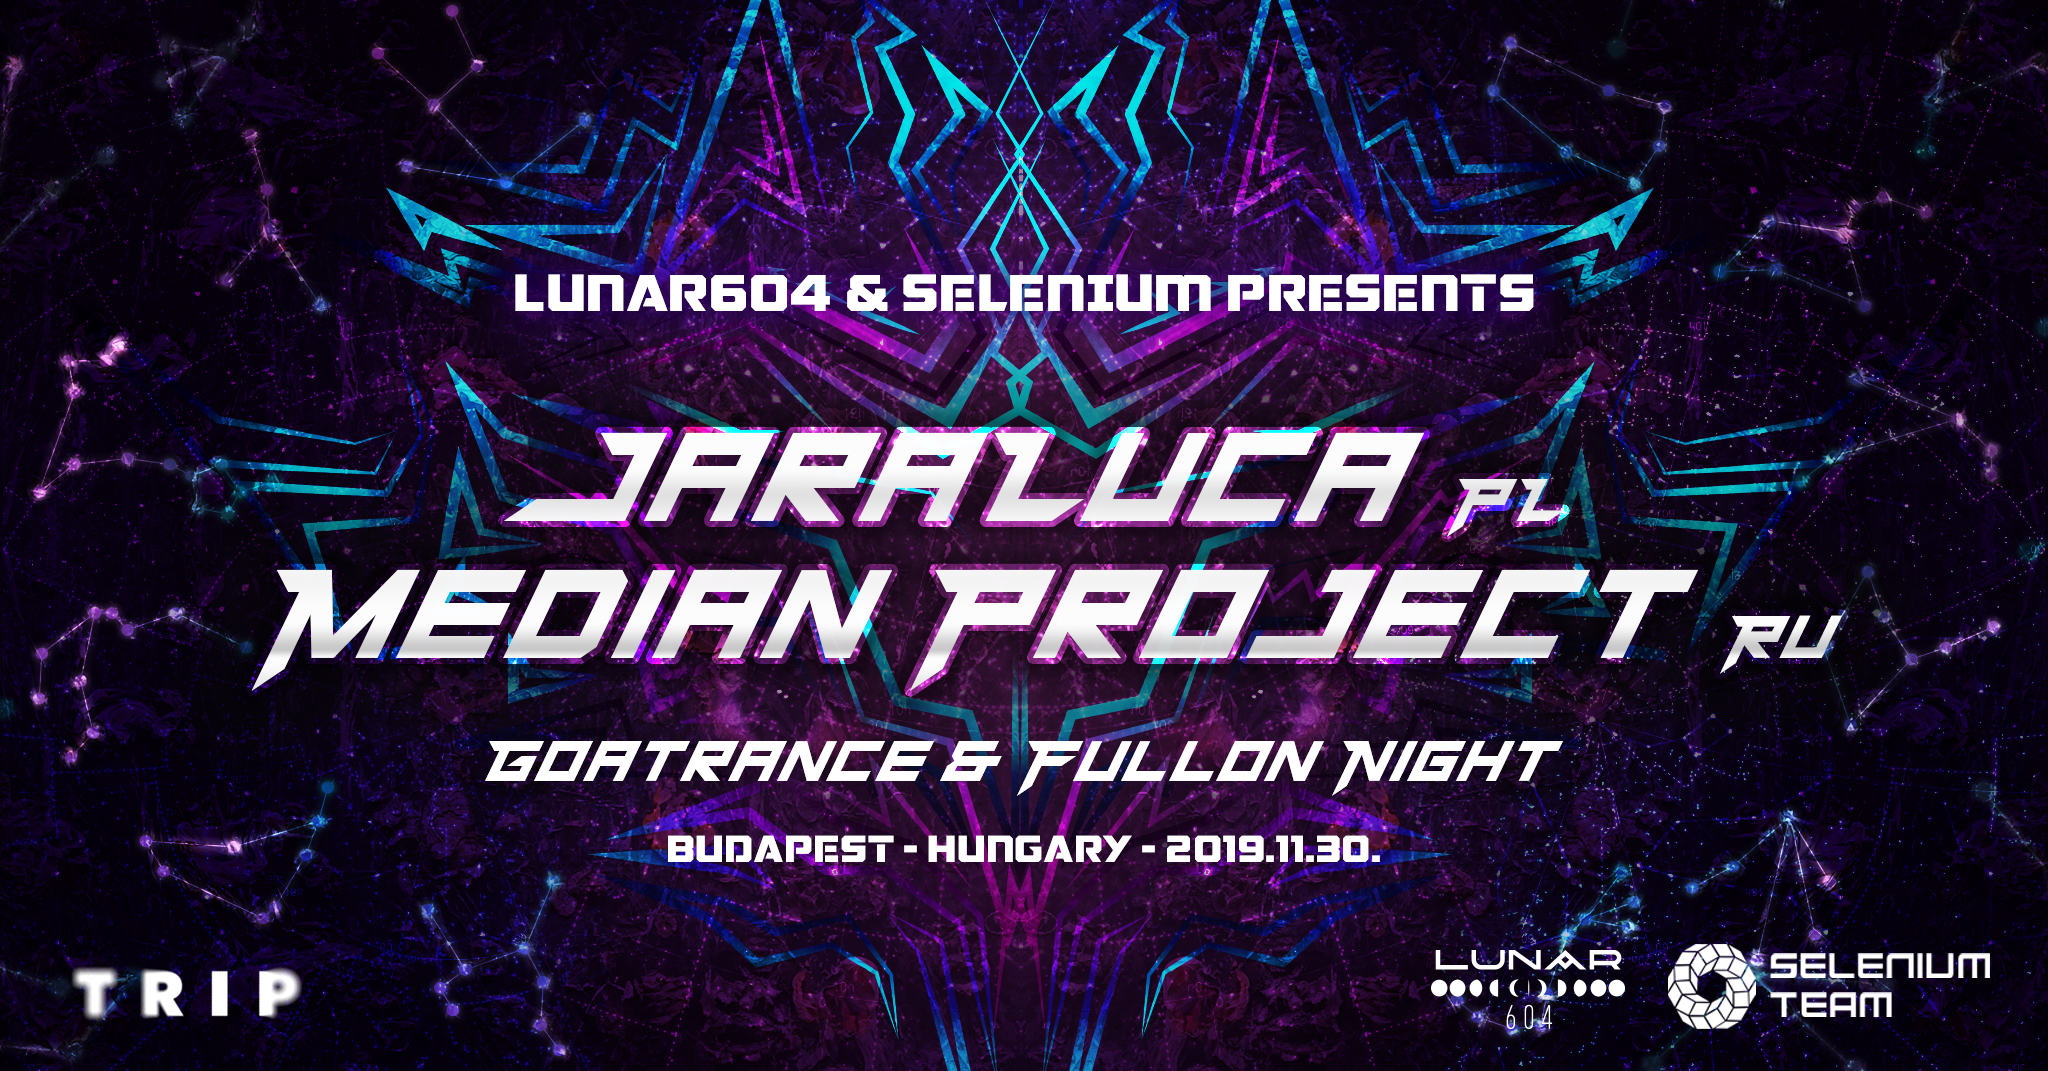 Lunar 604 & Selenium party w/ Jaraluca & Median Project // TRIP